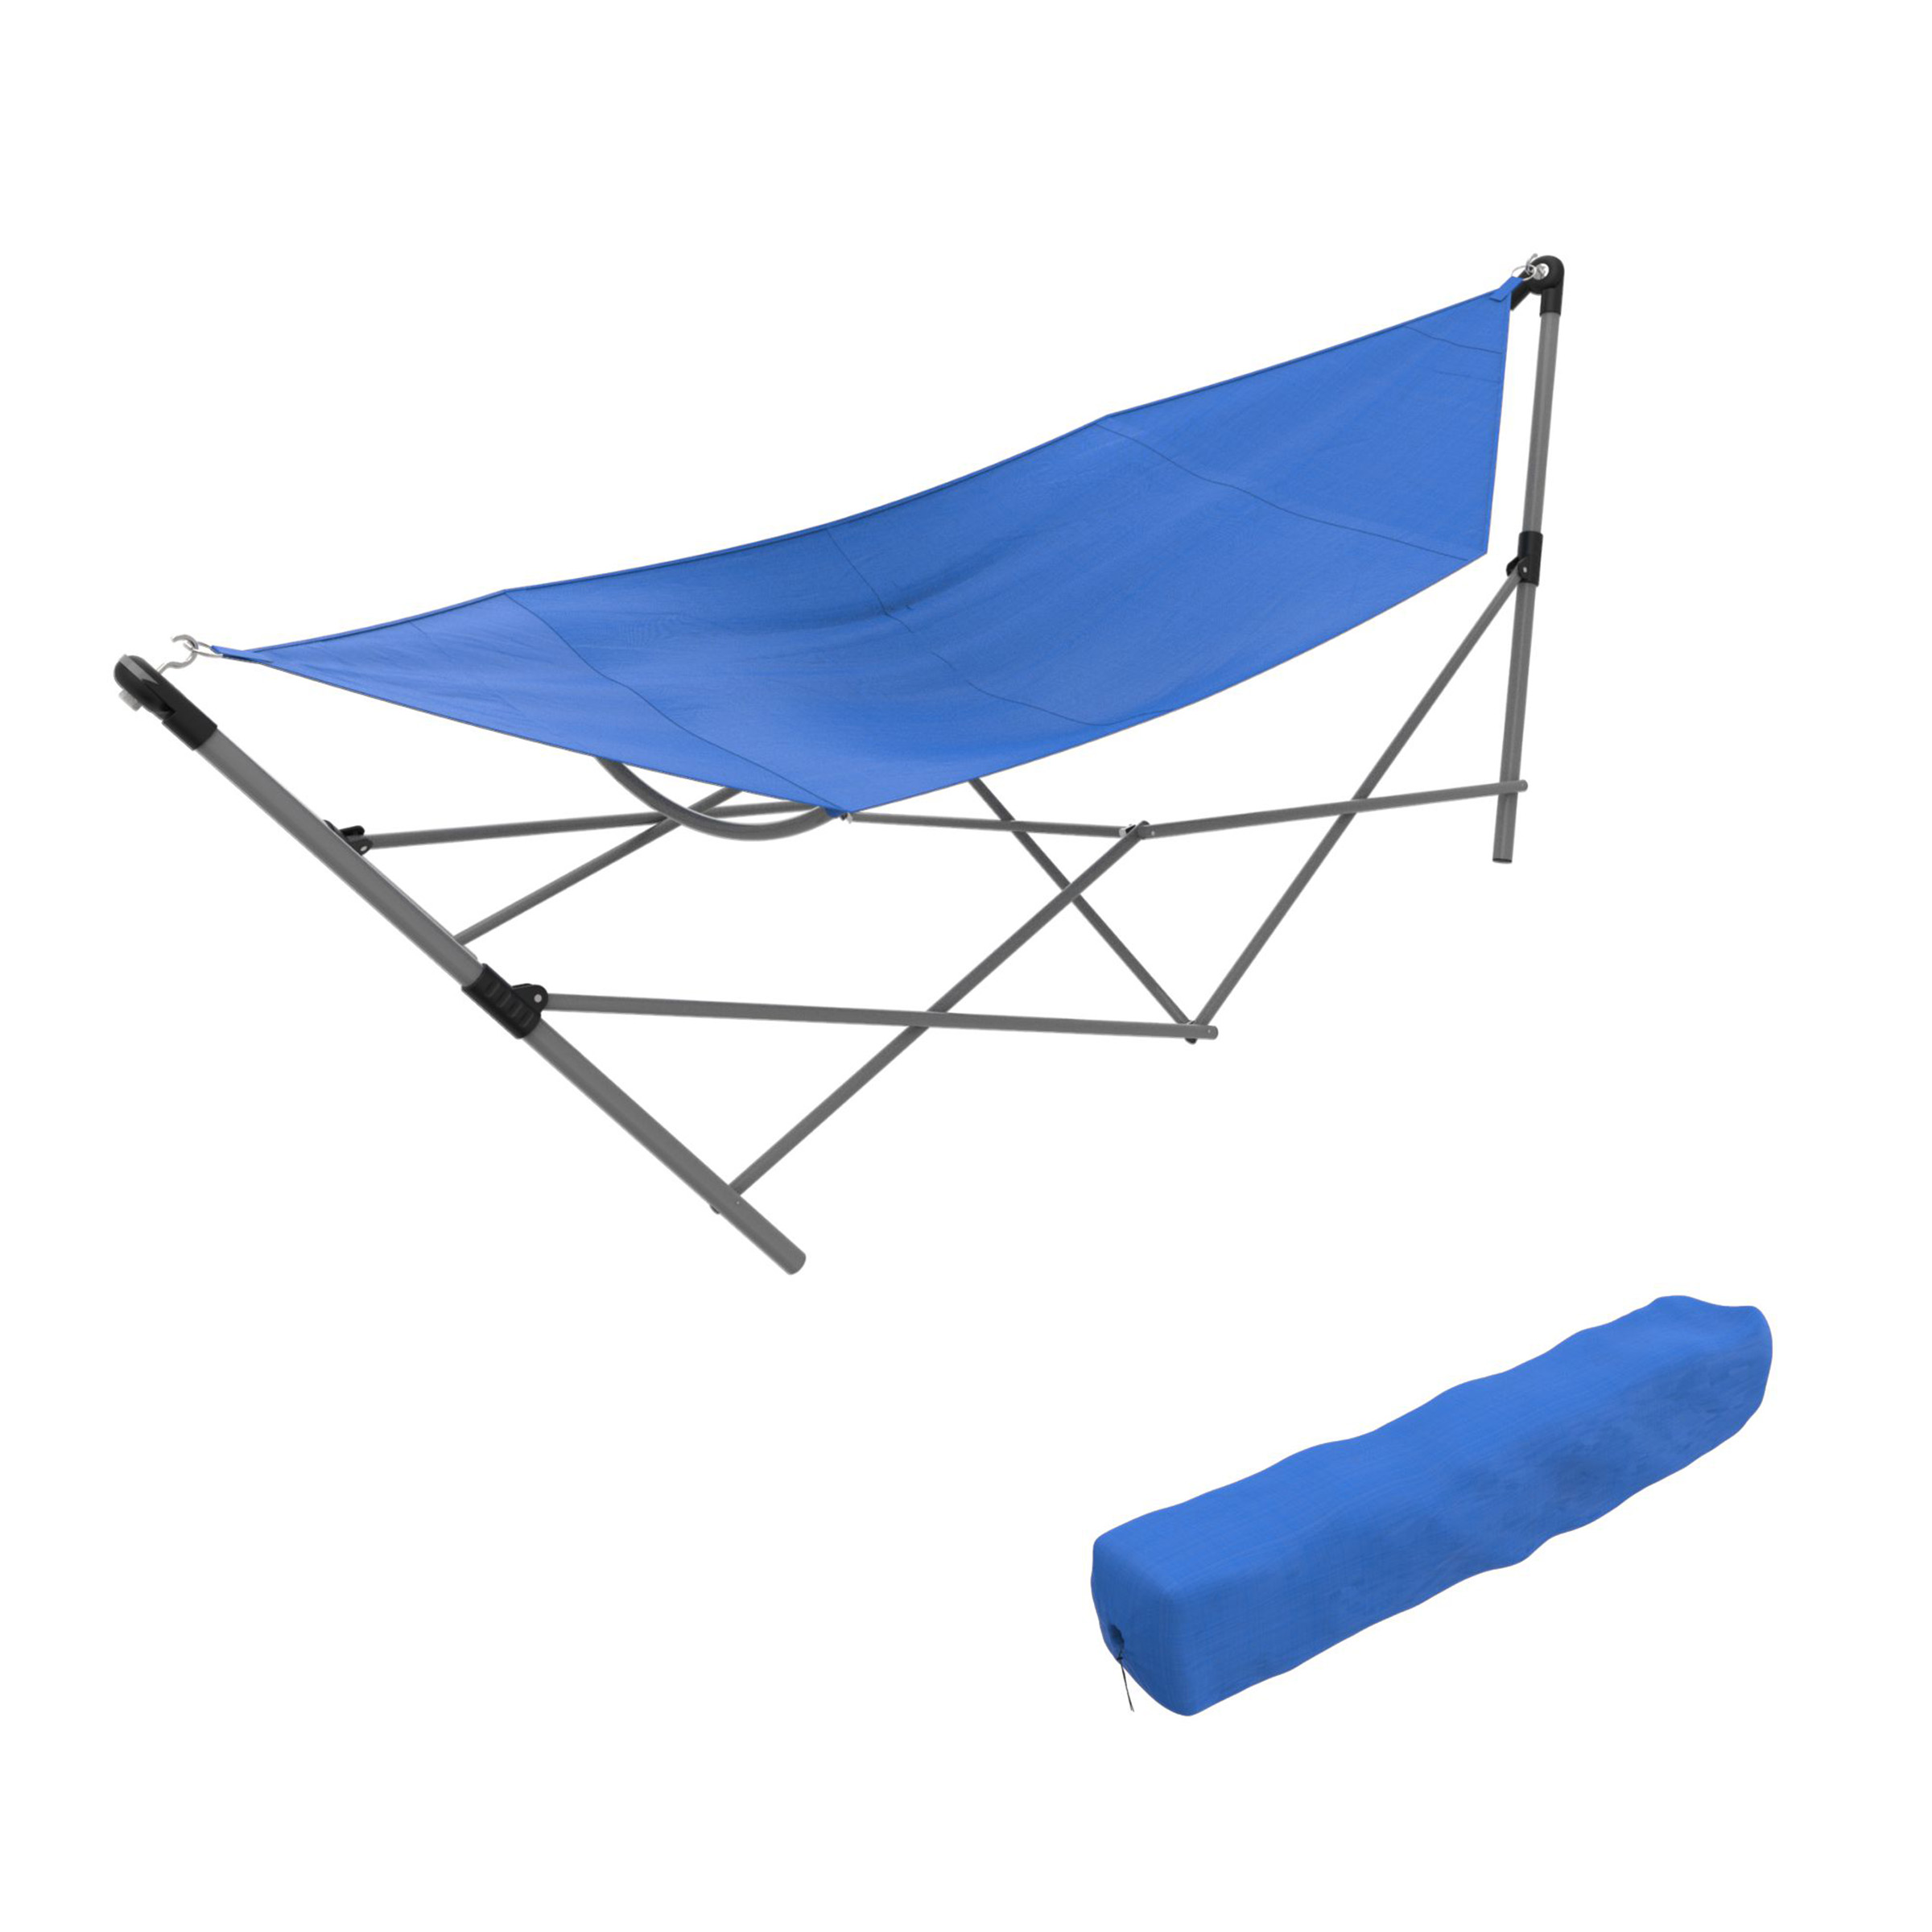 Portable Hammock with Stand-Folds and Fits into Included Carry Bag by Pure Garden -Black by Trademark Global LLC